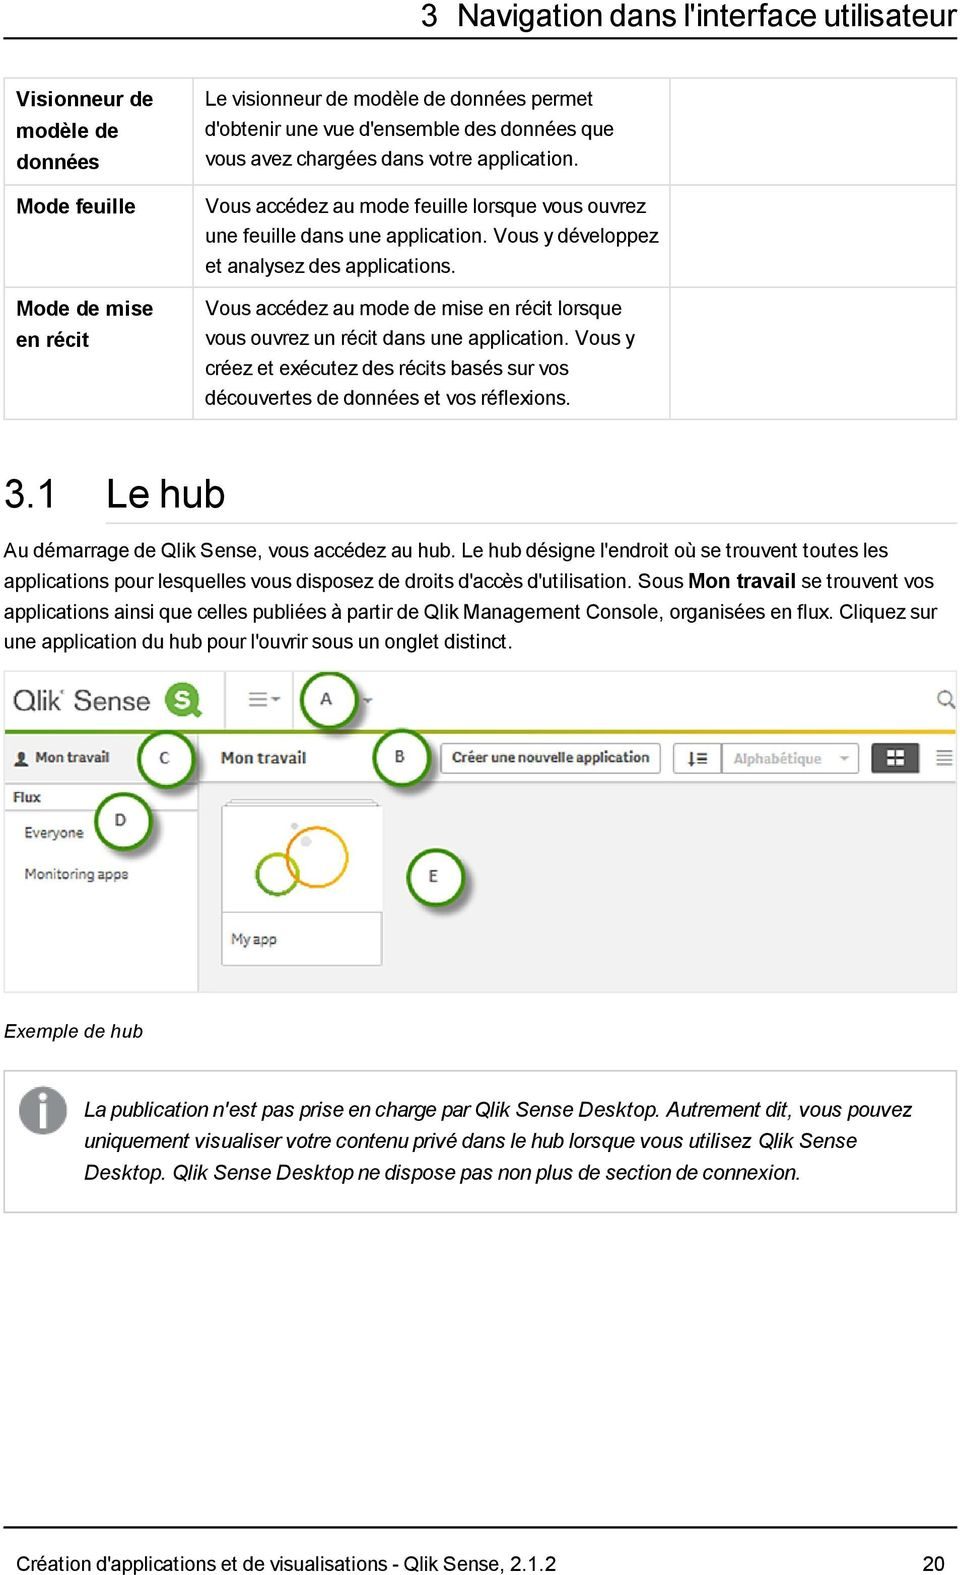 Création d'applications et de visualisations  Qlik Sense